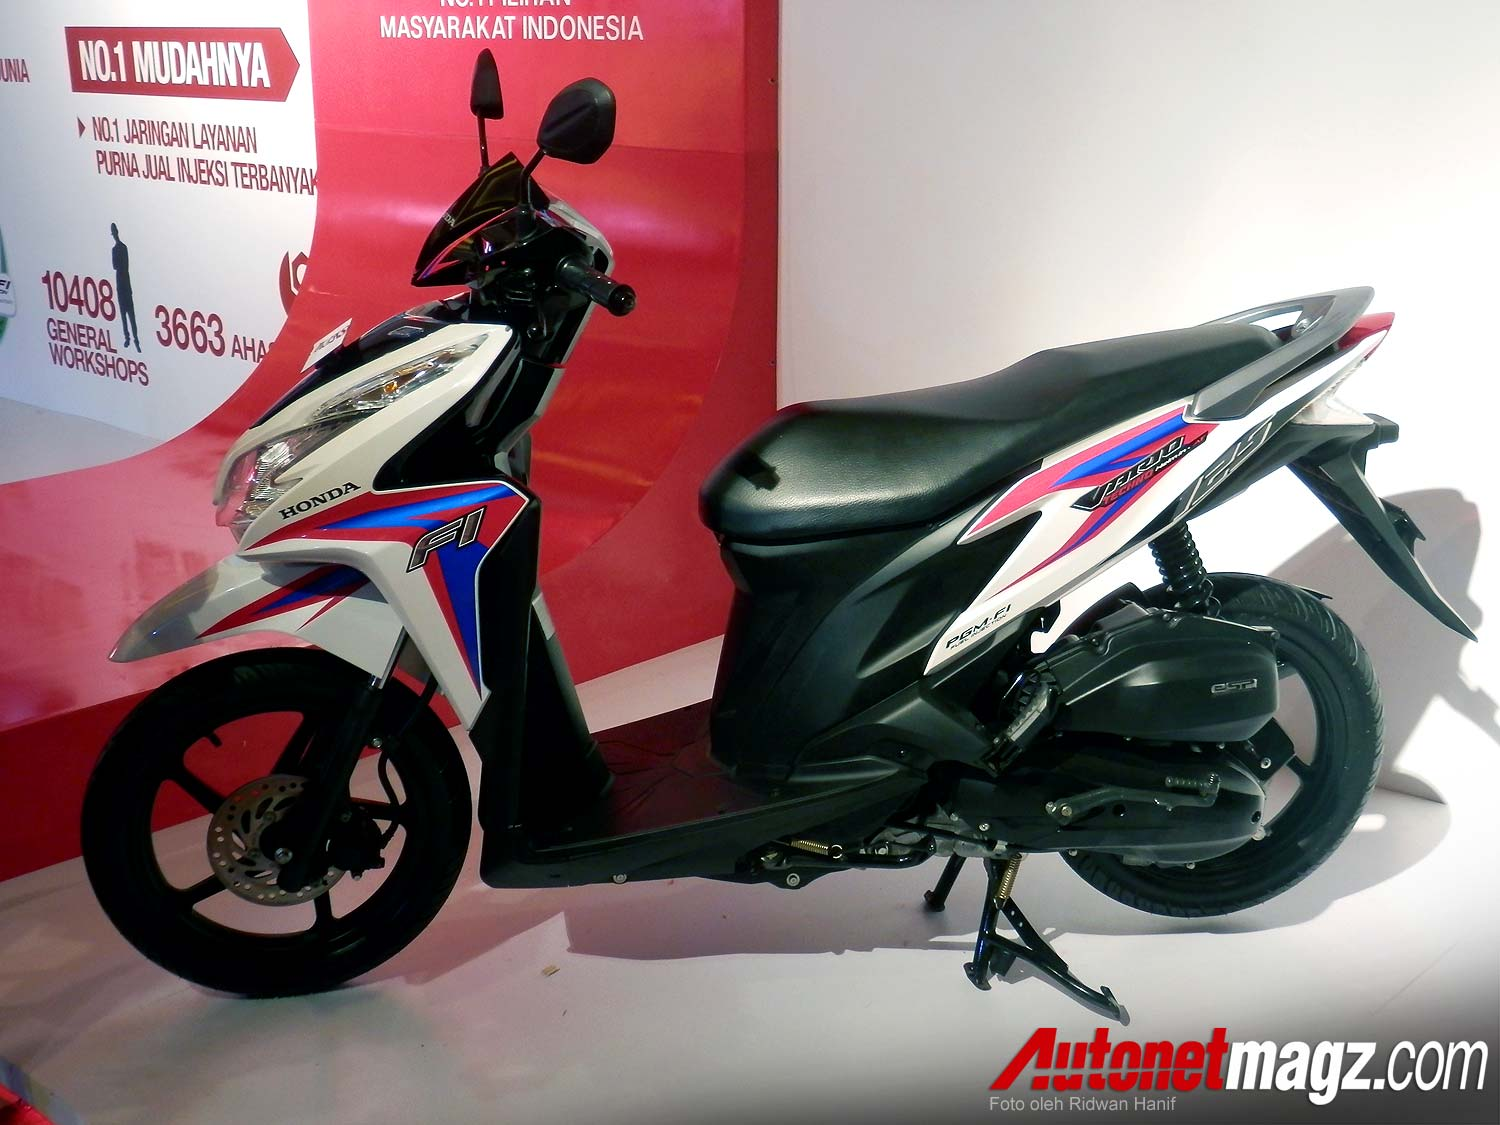 2014 NEW Honda Vario 125 CBS ISS Indonesia - YouTube